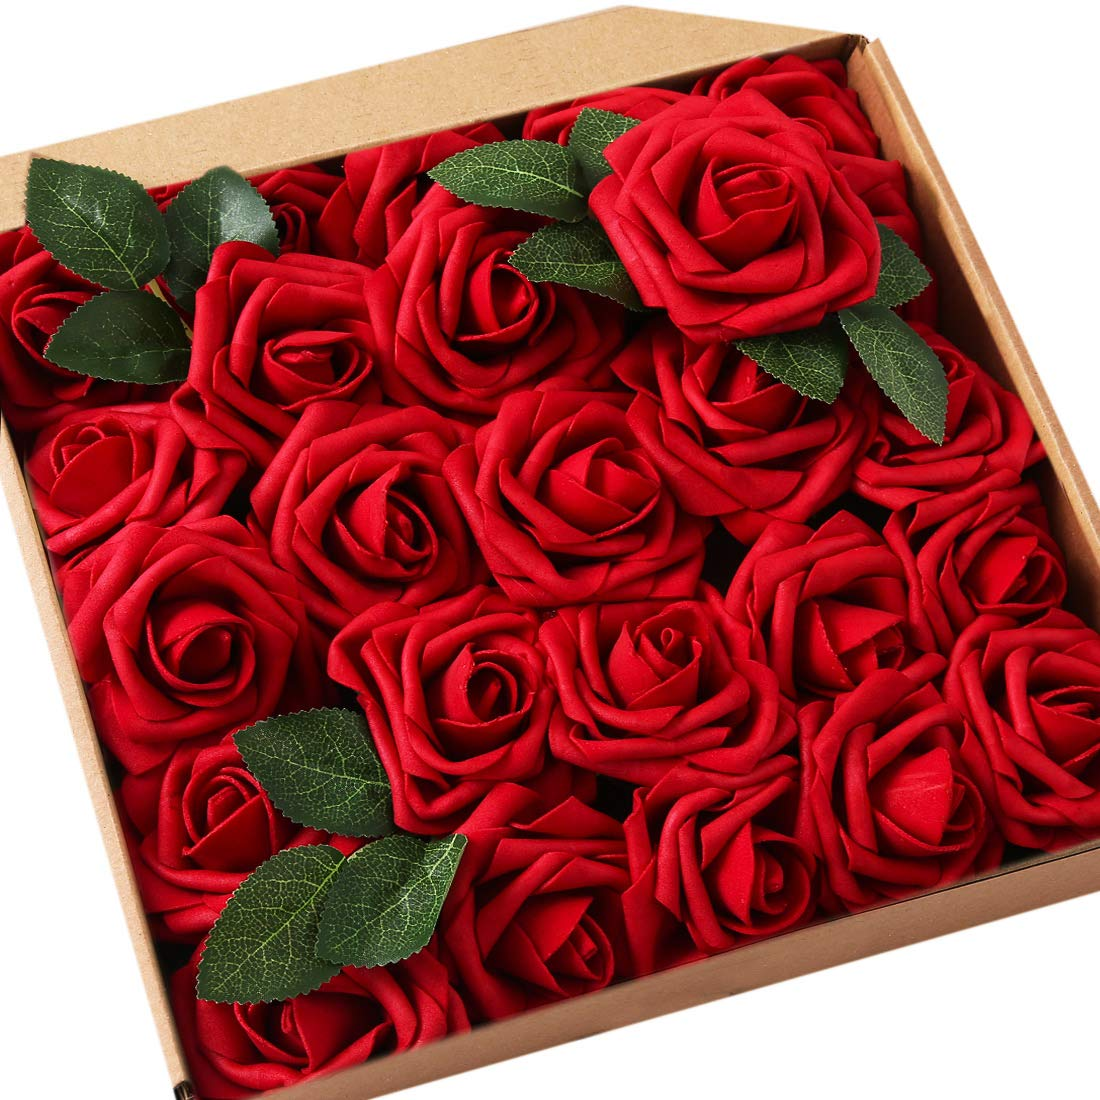 JaosWish 25PCS Real Touch Fake Roses Artificial Flowers Foam Roses DIY for Wedding Bouquets Home Decorations